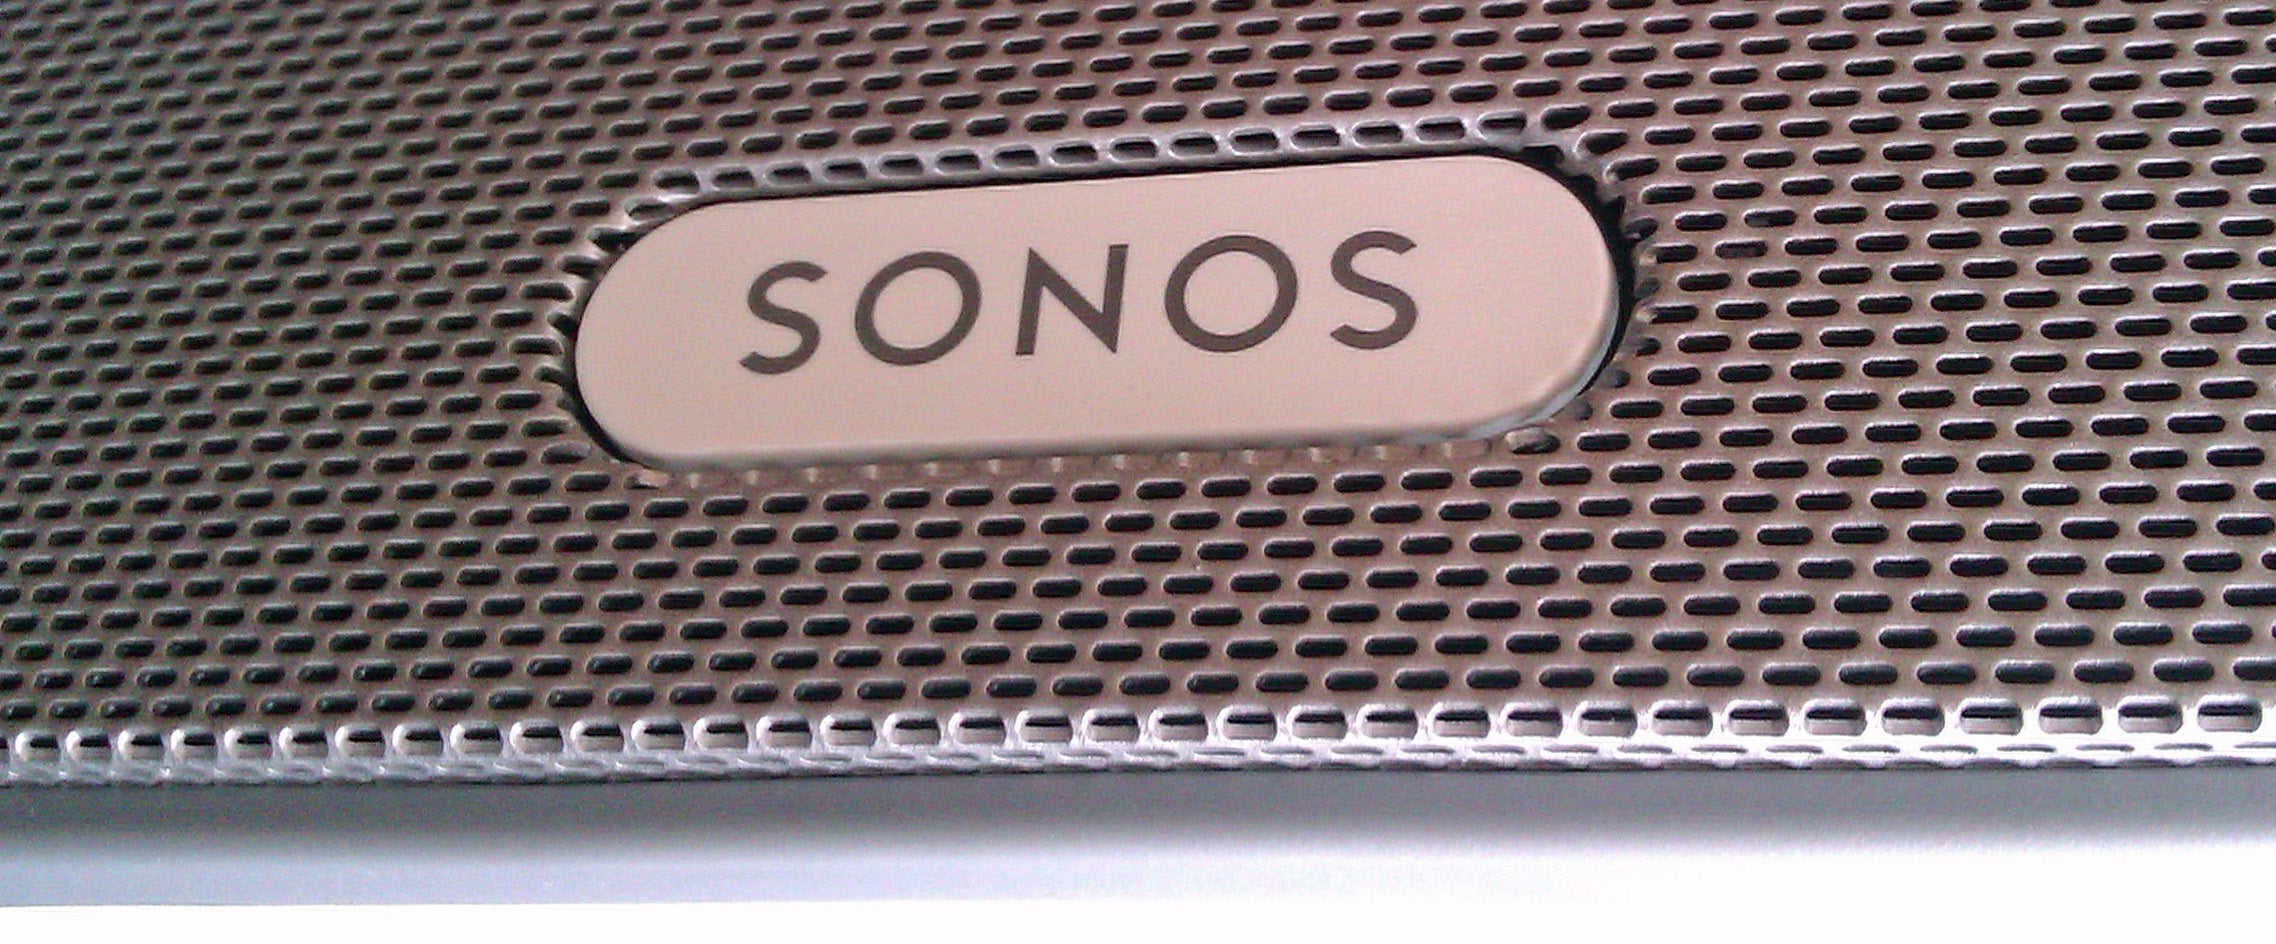 Sonos CEO issues apology and clarification over support for older speakers